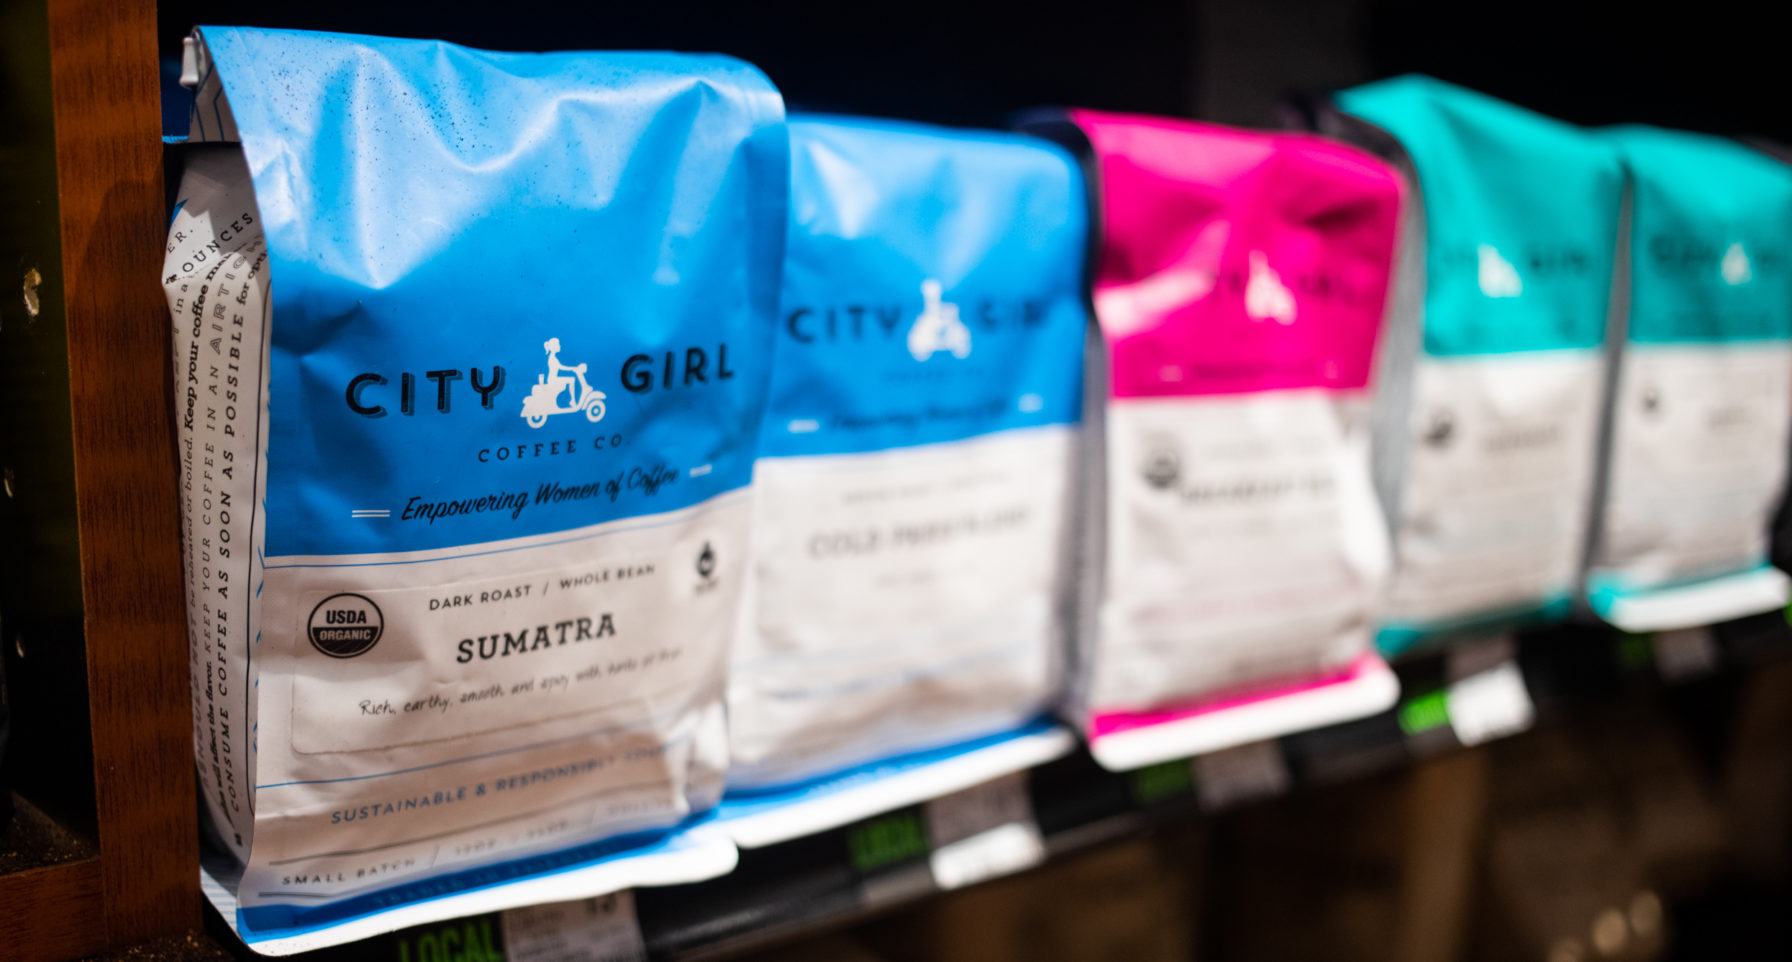 From Bean to Bag, Artisan coffee packaging can help tell a complex story in a flash